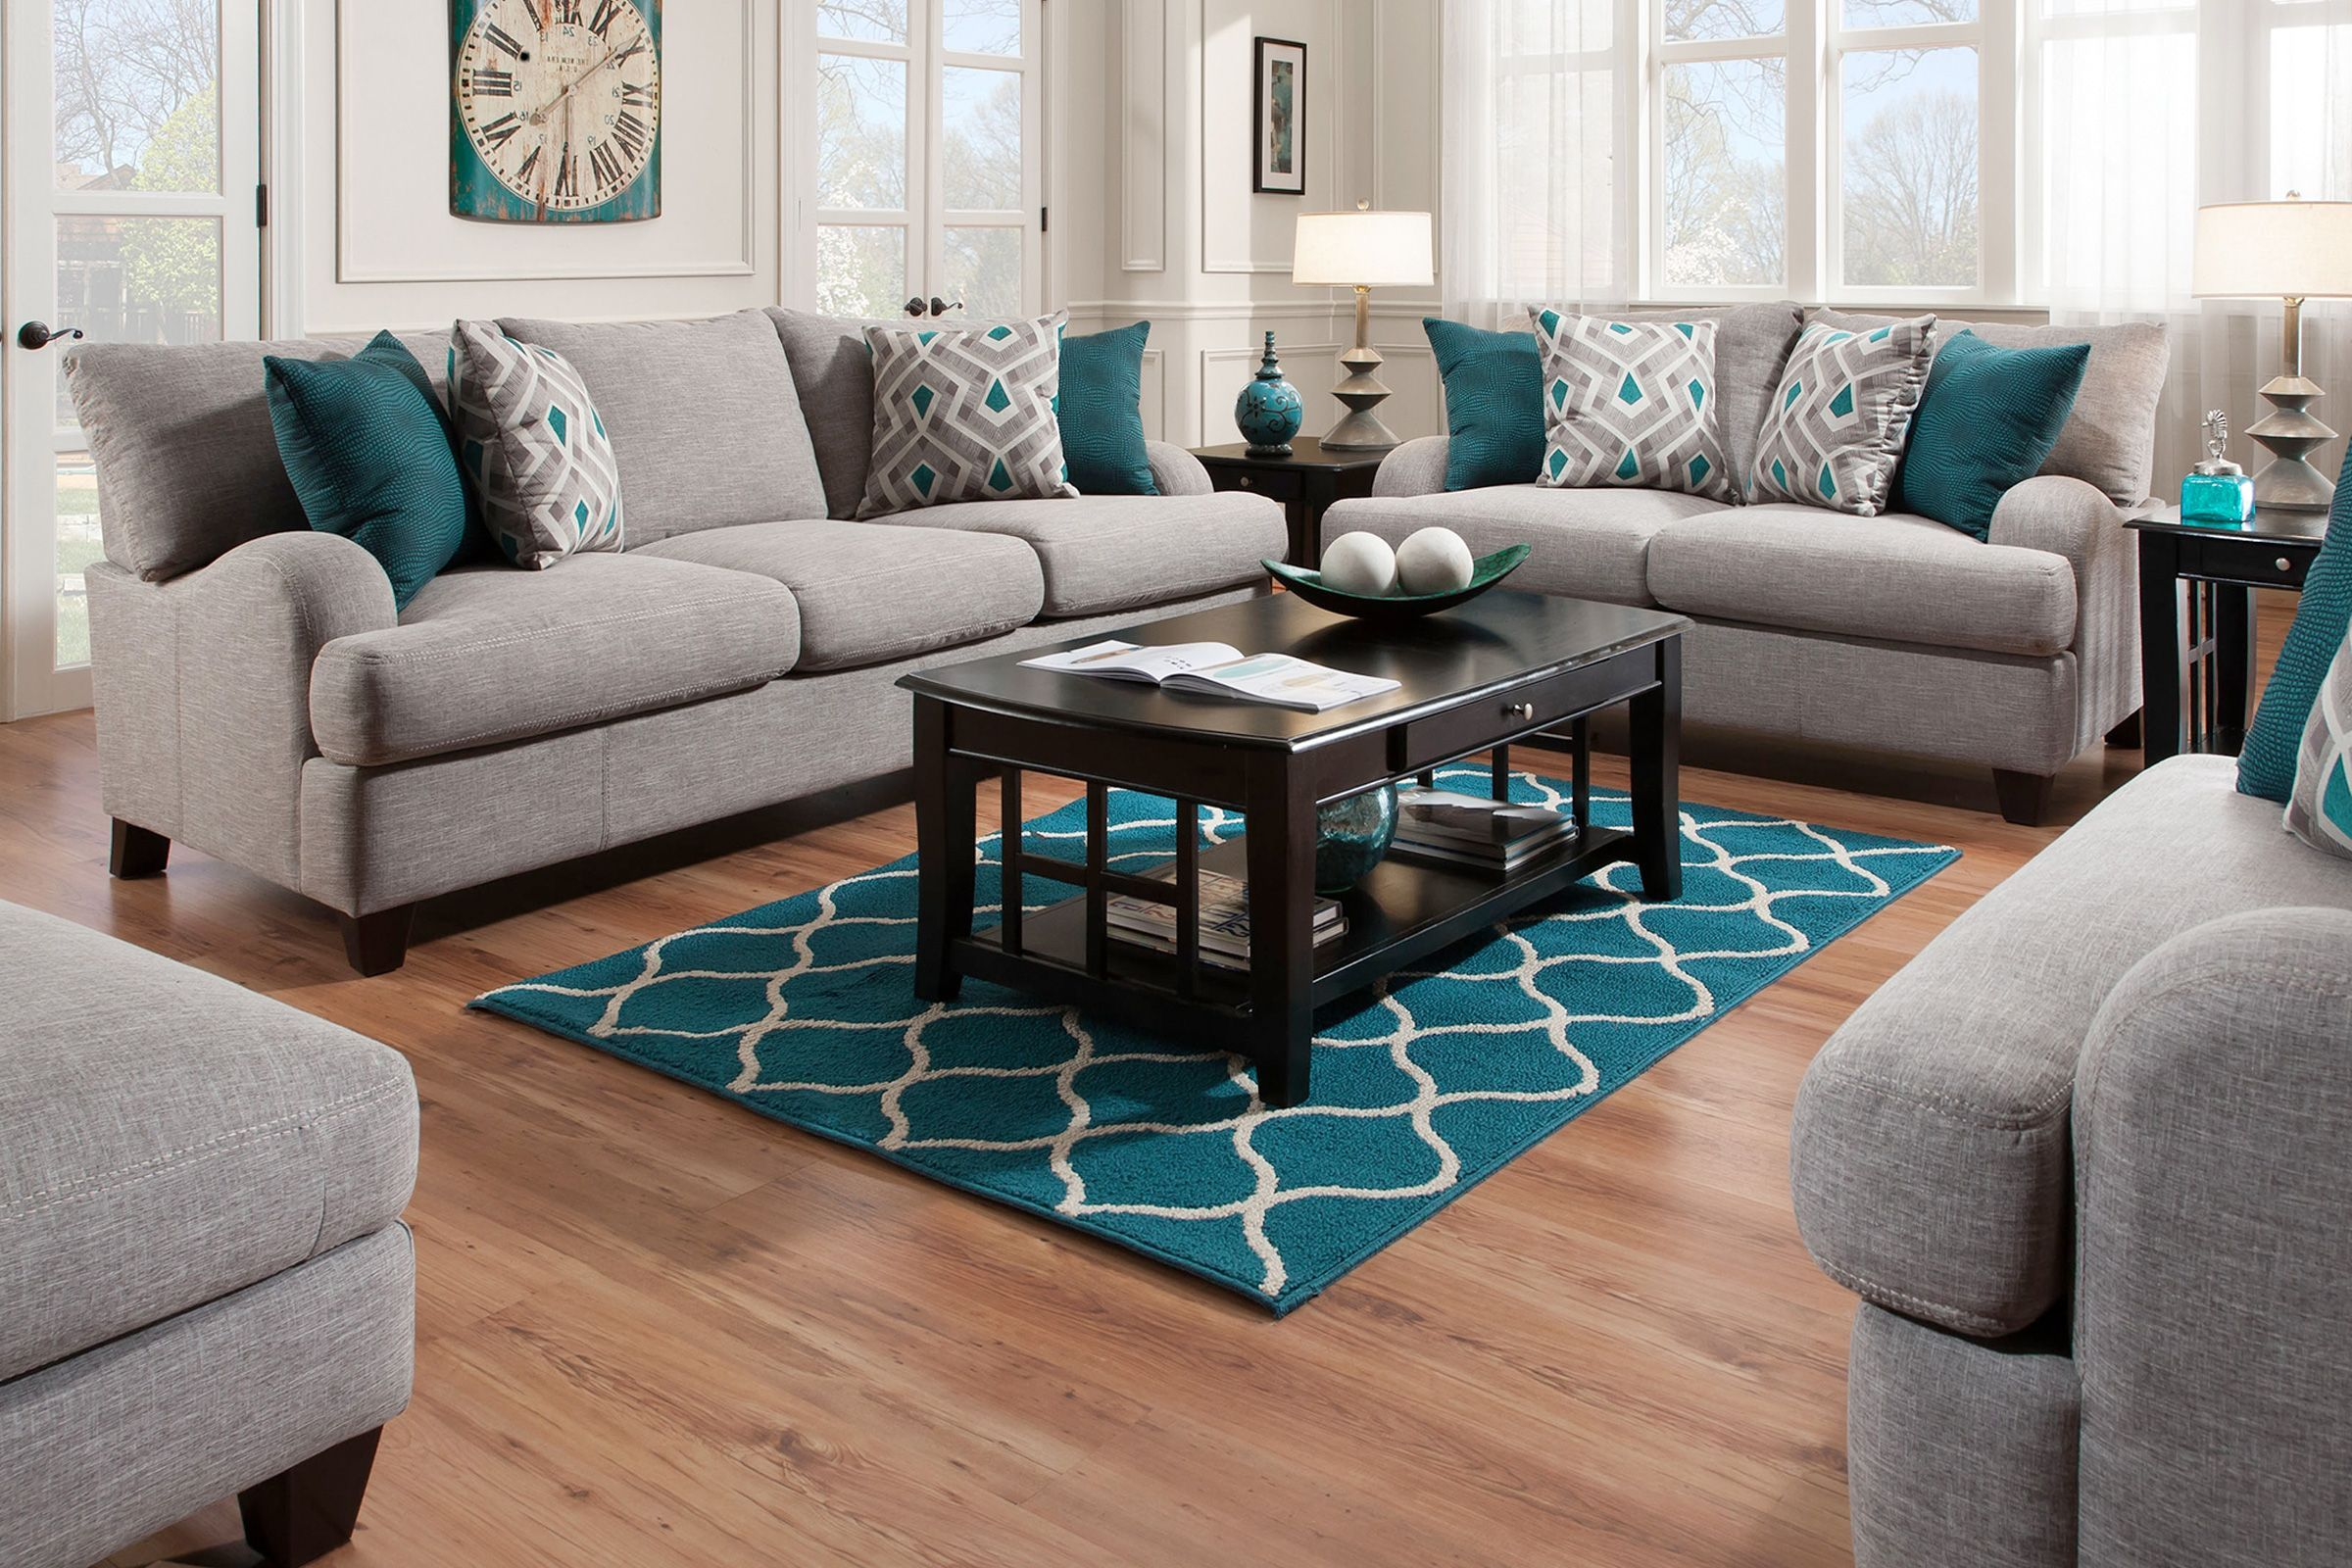 Paradise 8 Piece Big Picture Package With 50 Led Tv Living Room Decor Apartment Living Room Turquoise Living Room Decor [ 1600 x 2400 Pixel ]